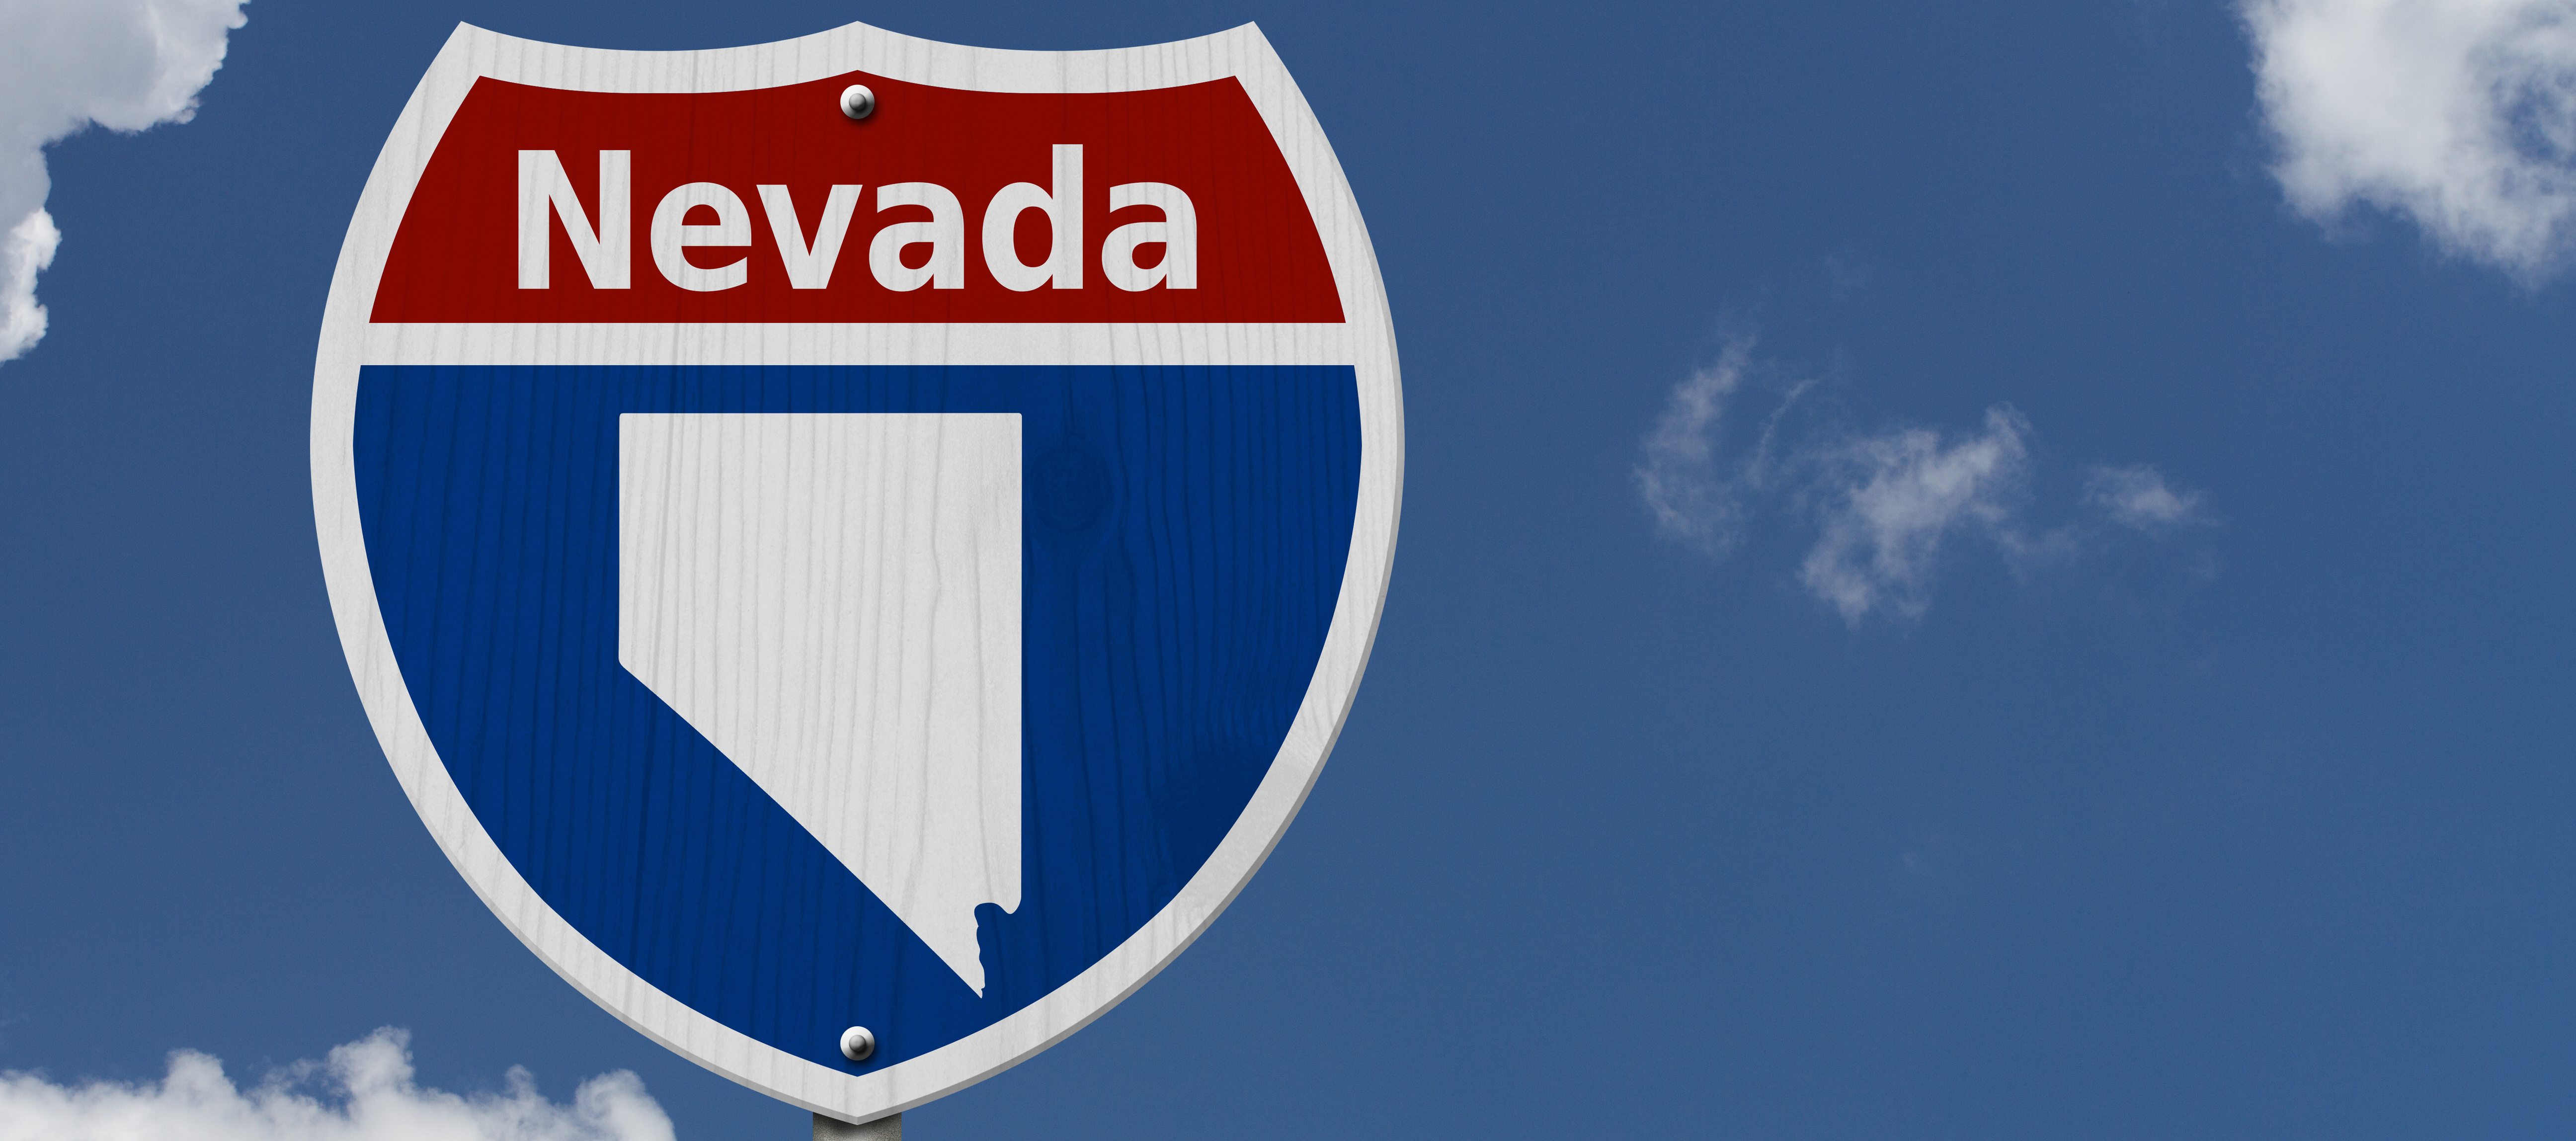 Nevada Restricts Pre-Employment Drug Testing